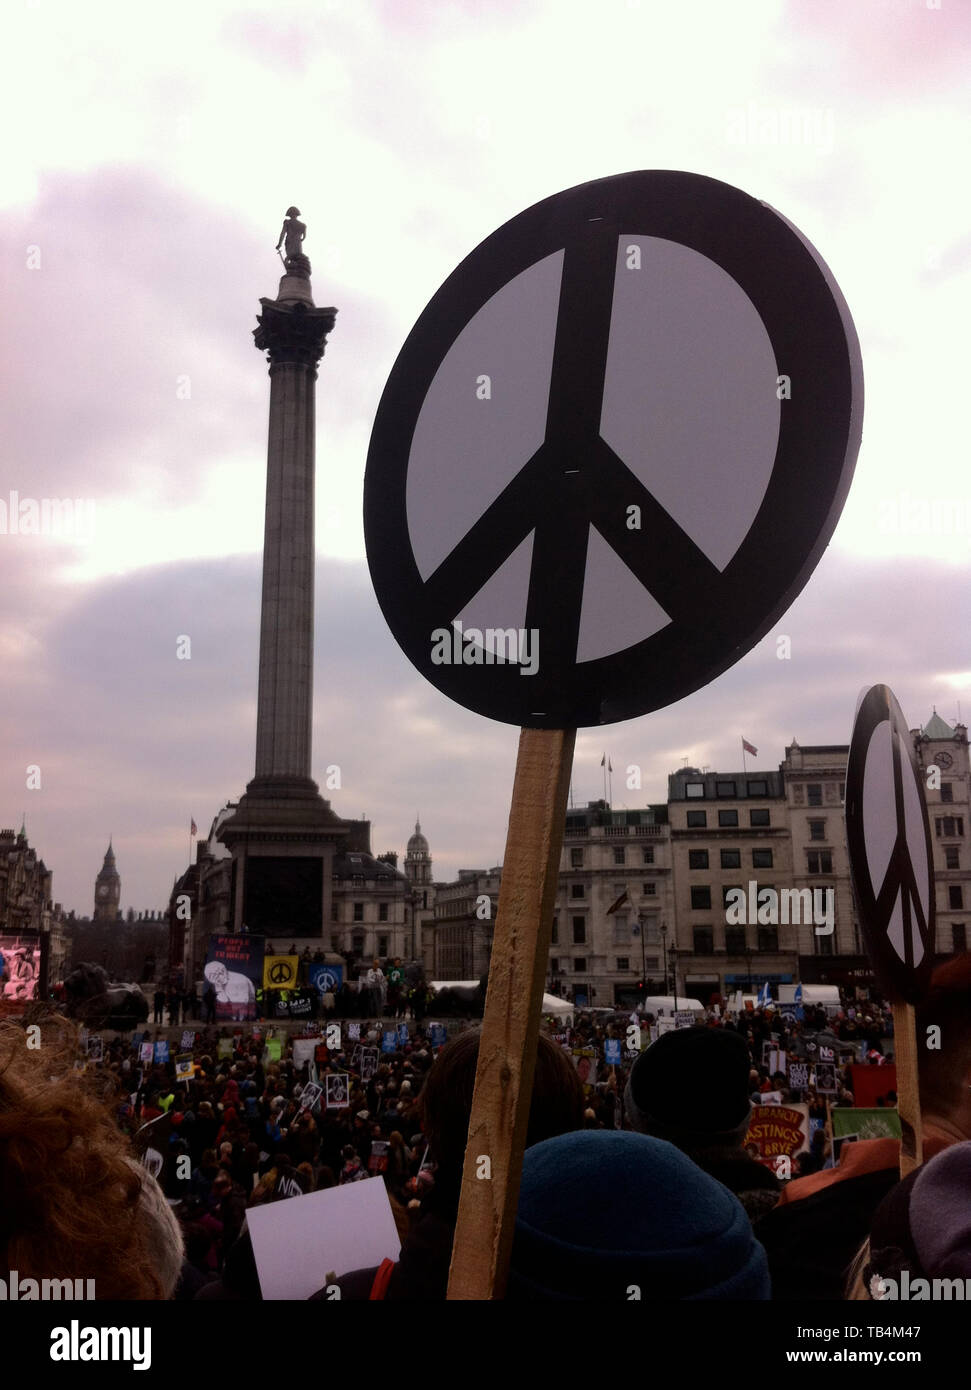 CND Trident rally, London, February 2016 - Stock Image